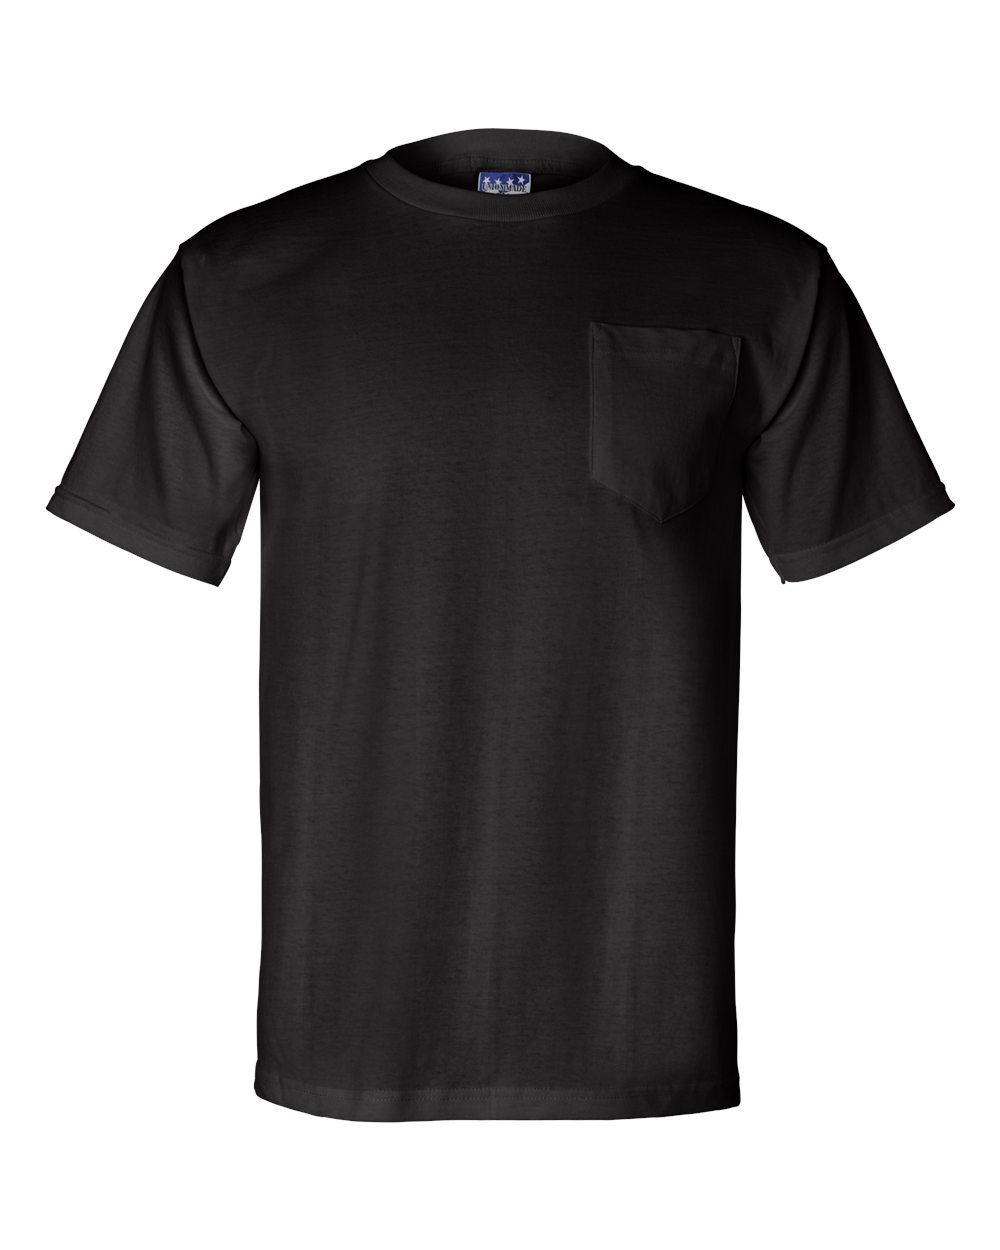 Bayside-Mens-Union-Made-Short-Sleeve-T-Shirt-with-a-Pocket-3015-up-to-3XL thumbnail 6